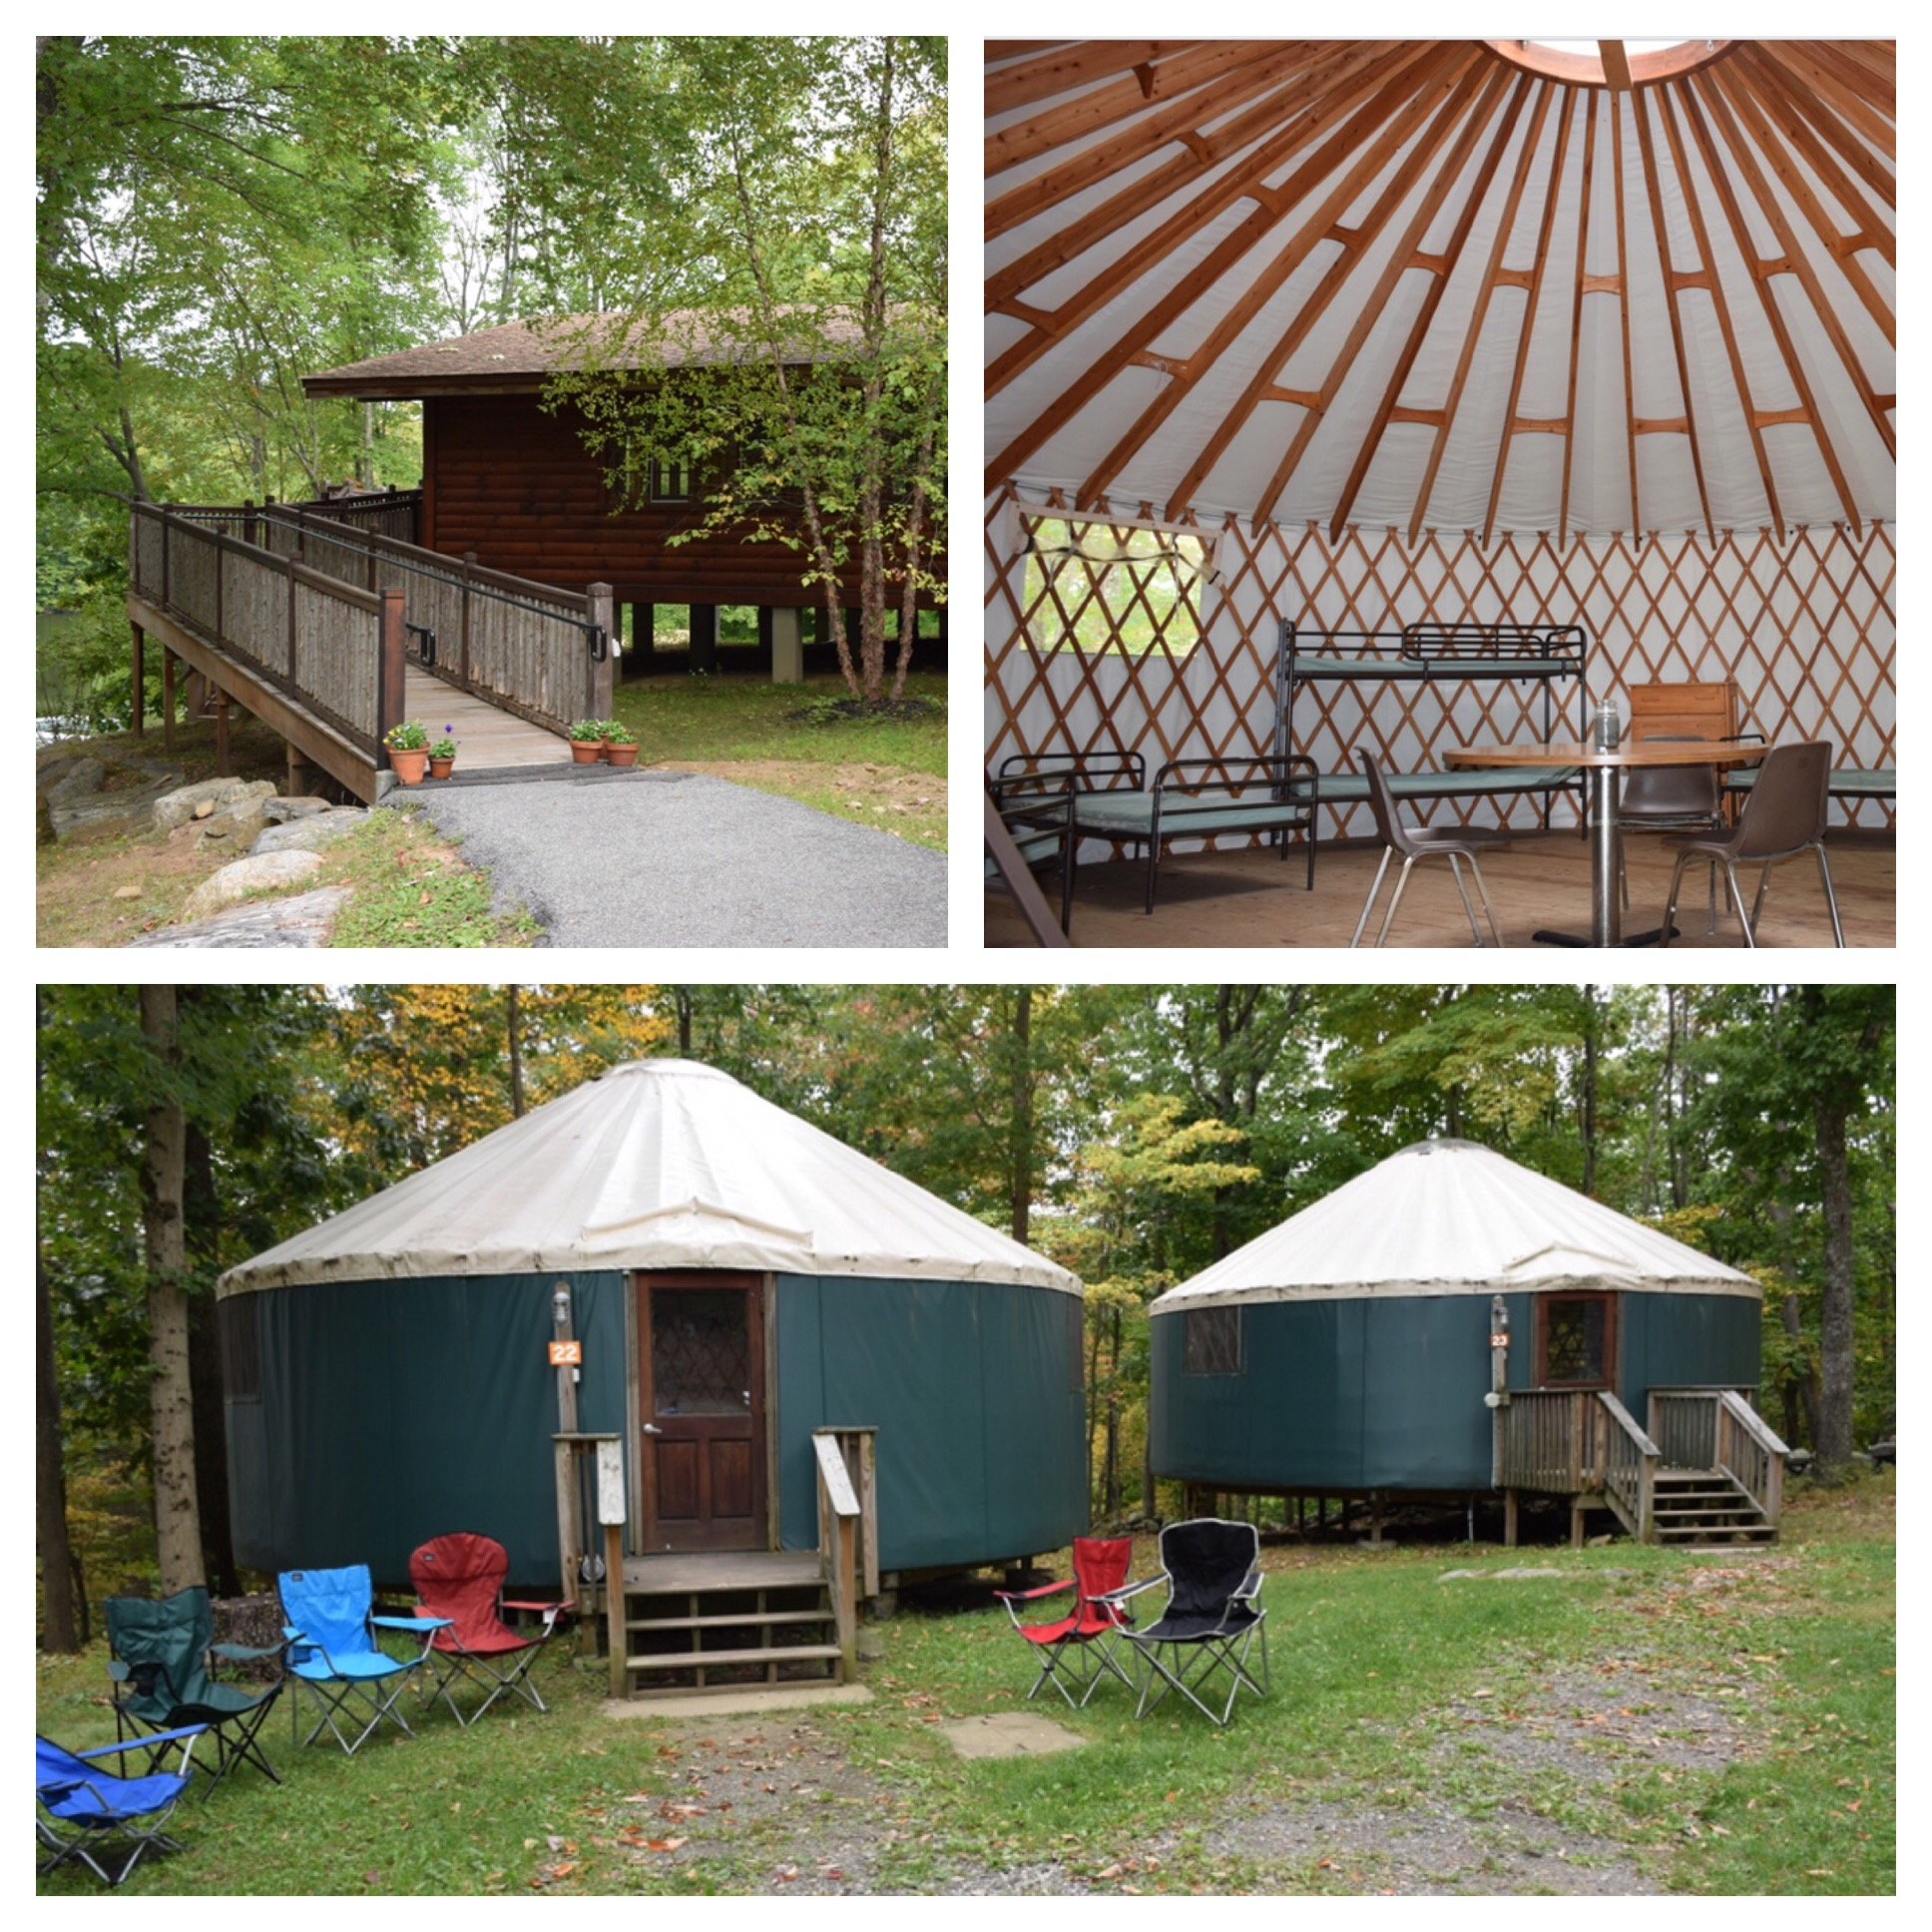 Kim had signs on the yurts like bars in Champaign - Kam and Dooleys - so cute! And that's our dining hall in the top left corner.